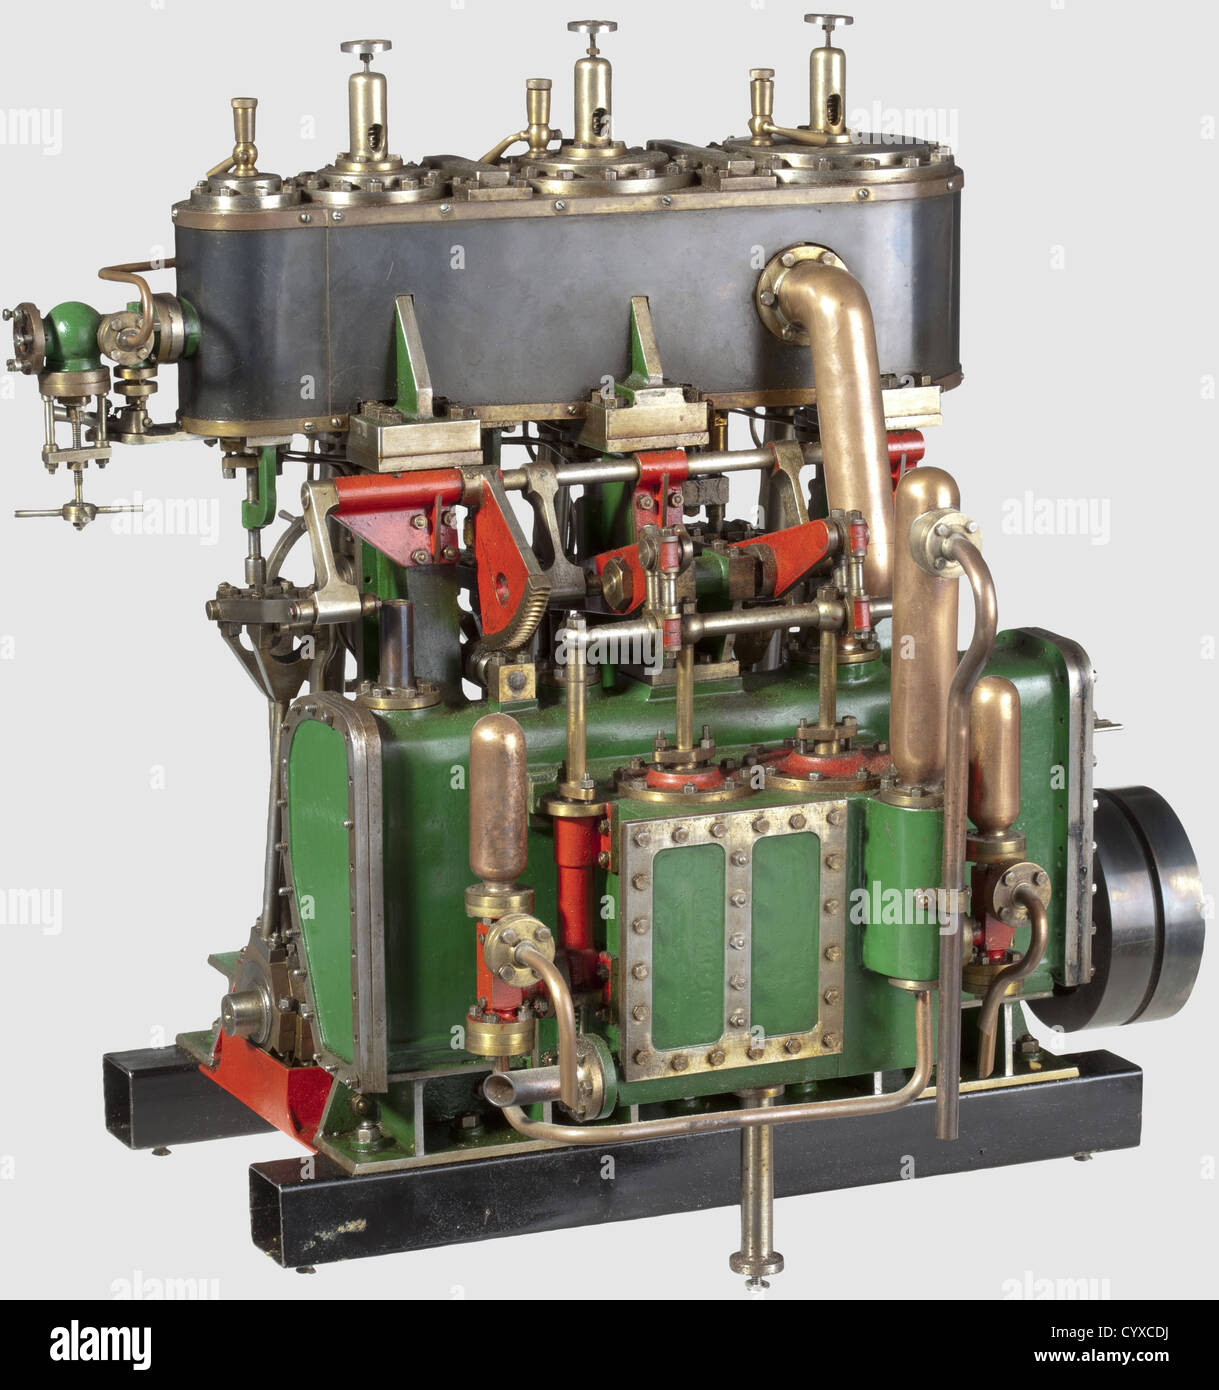 A very well detailed model triple expansion vertical reversing condensing marine engine, Built by H. Wall 1970 ¦S.D.S.M.E - Stock Image